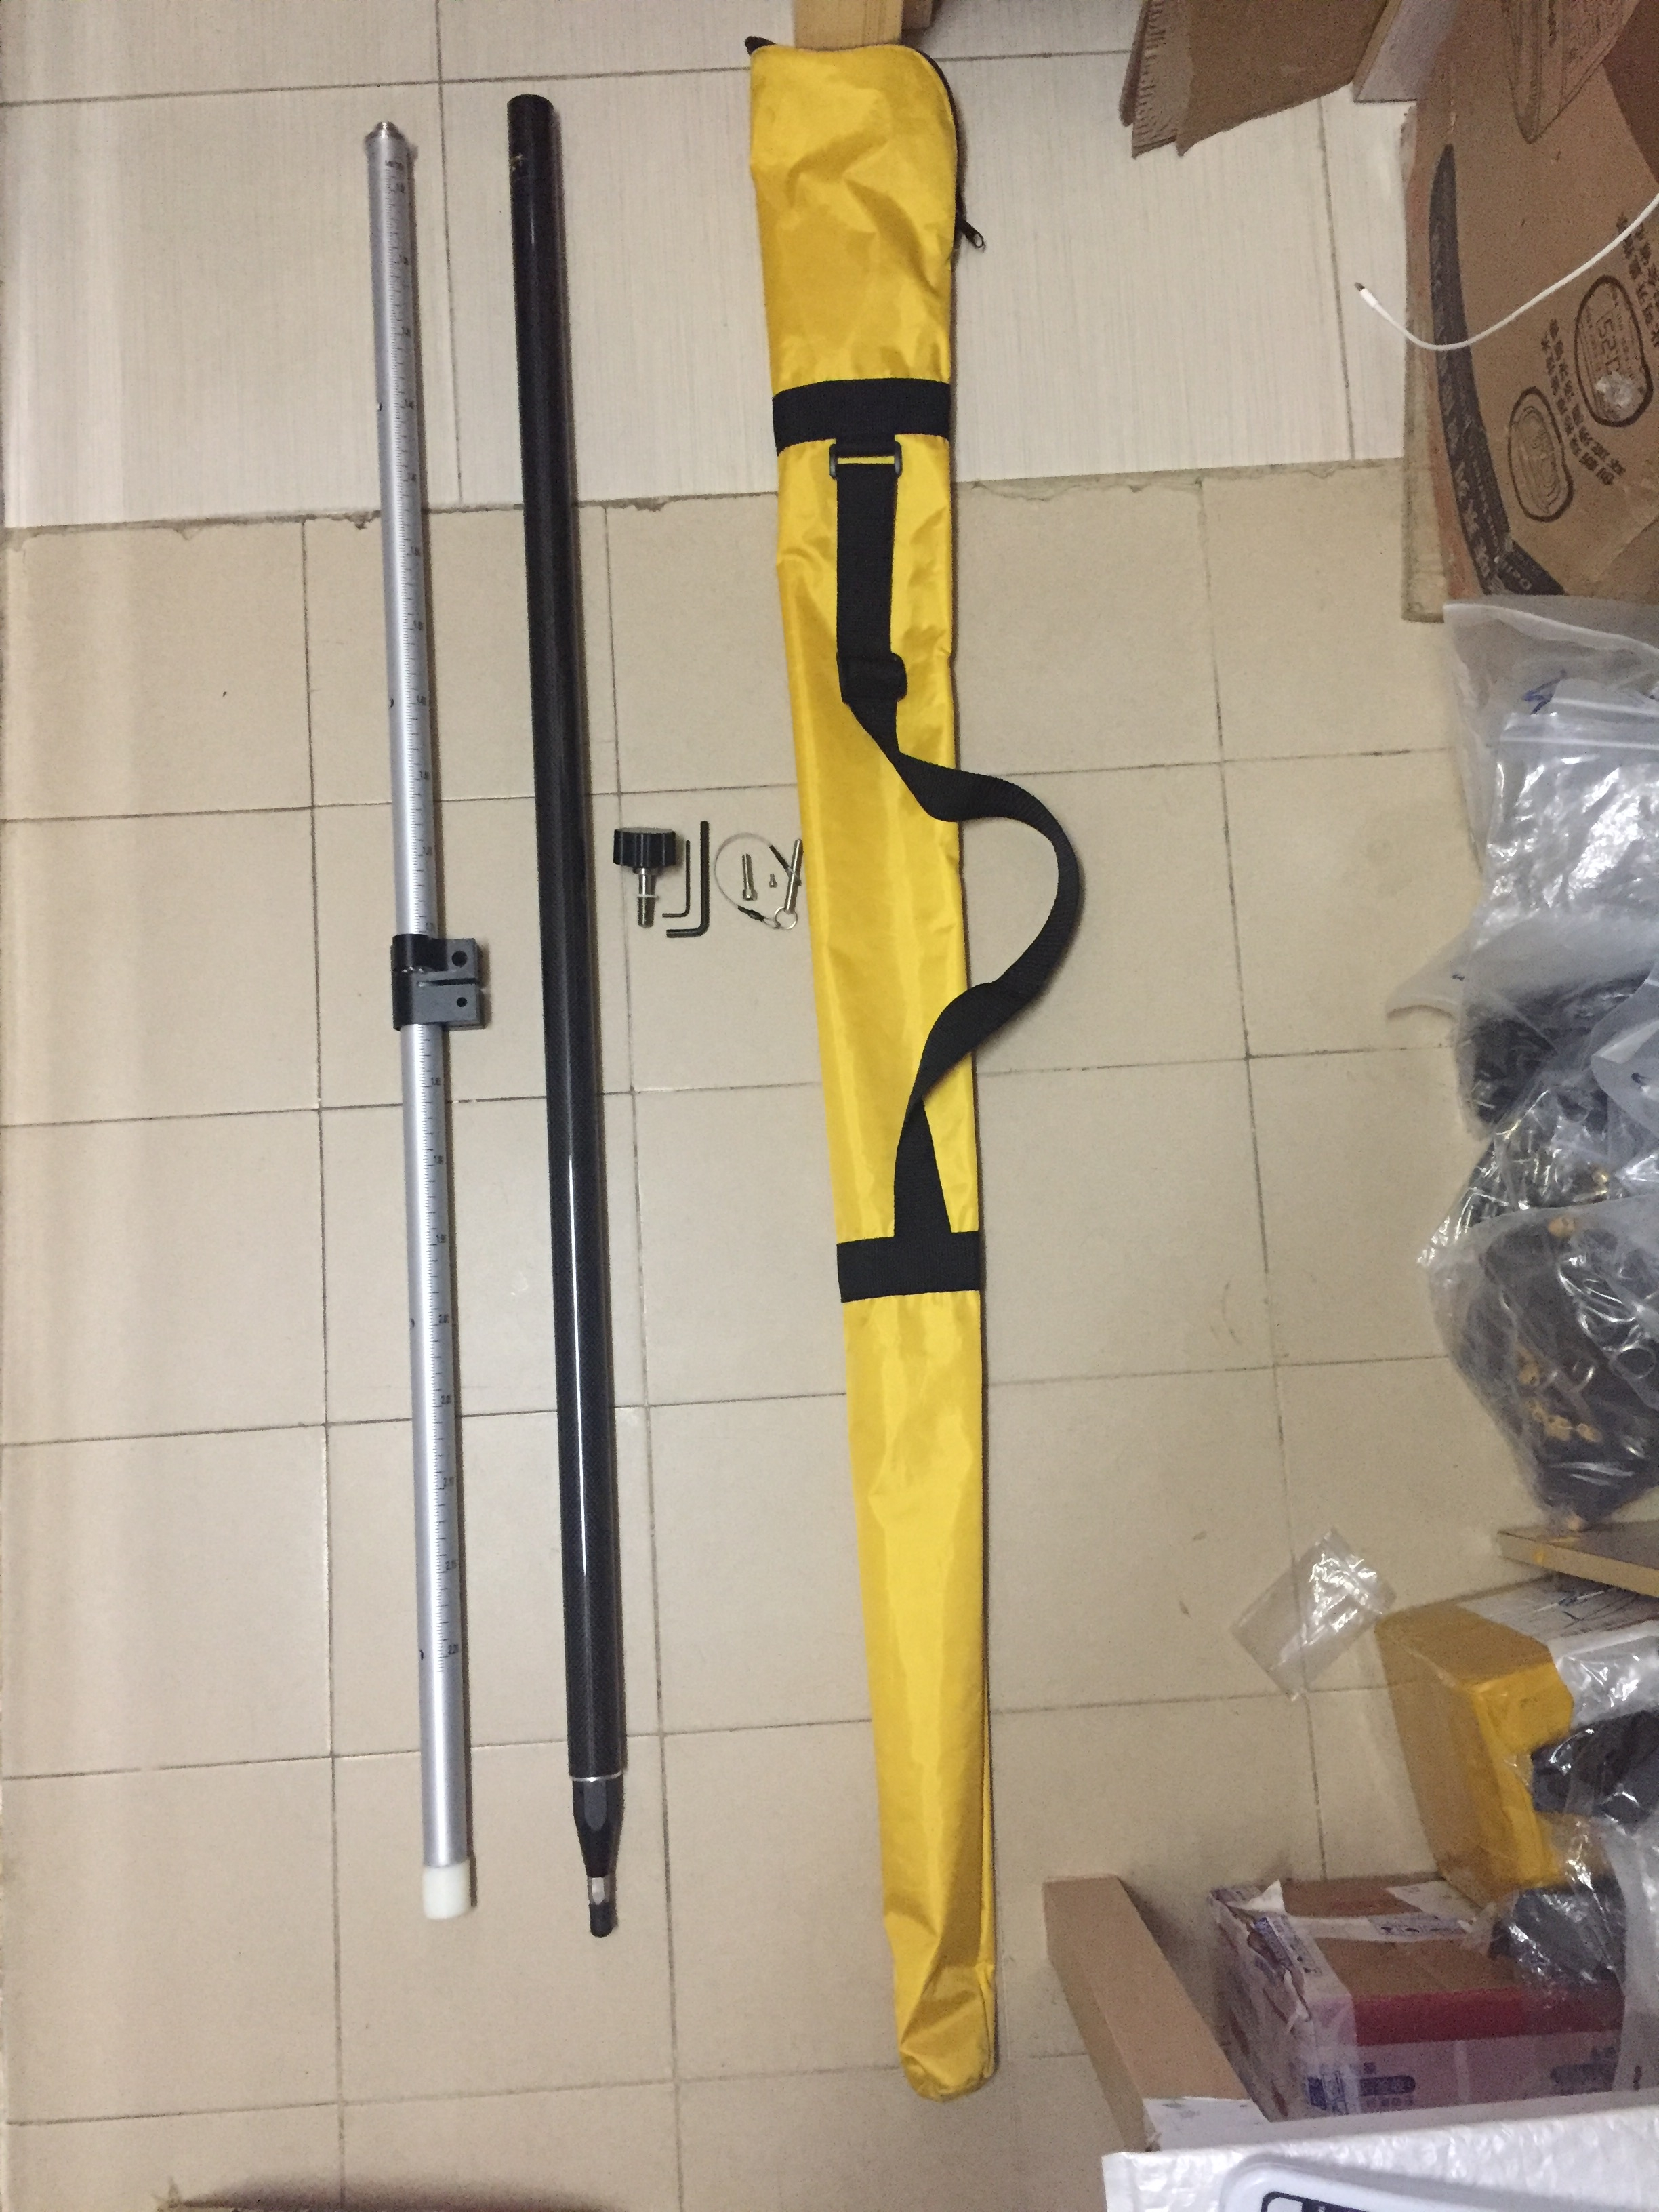 GPS Pole calibrated circular spirit level Telescopic Pull Carbon Fiber Pole Rod 5/8